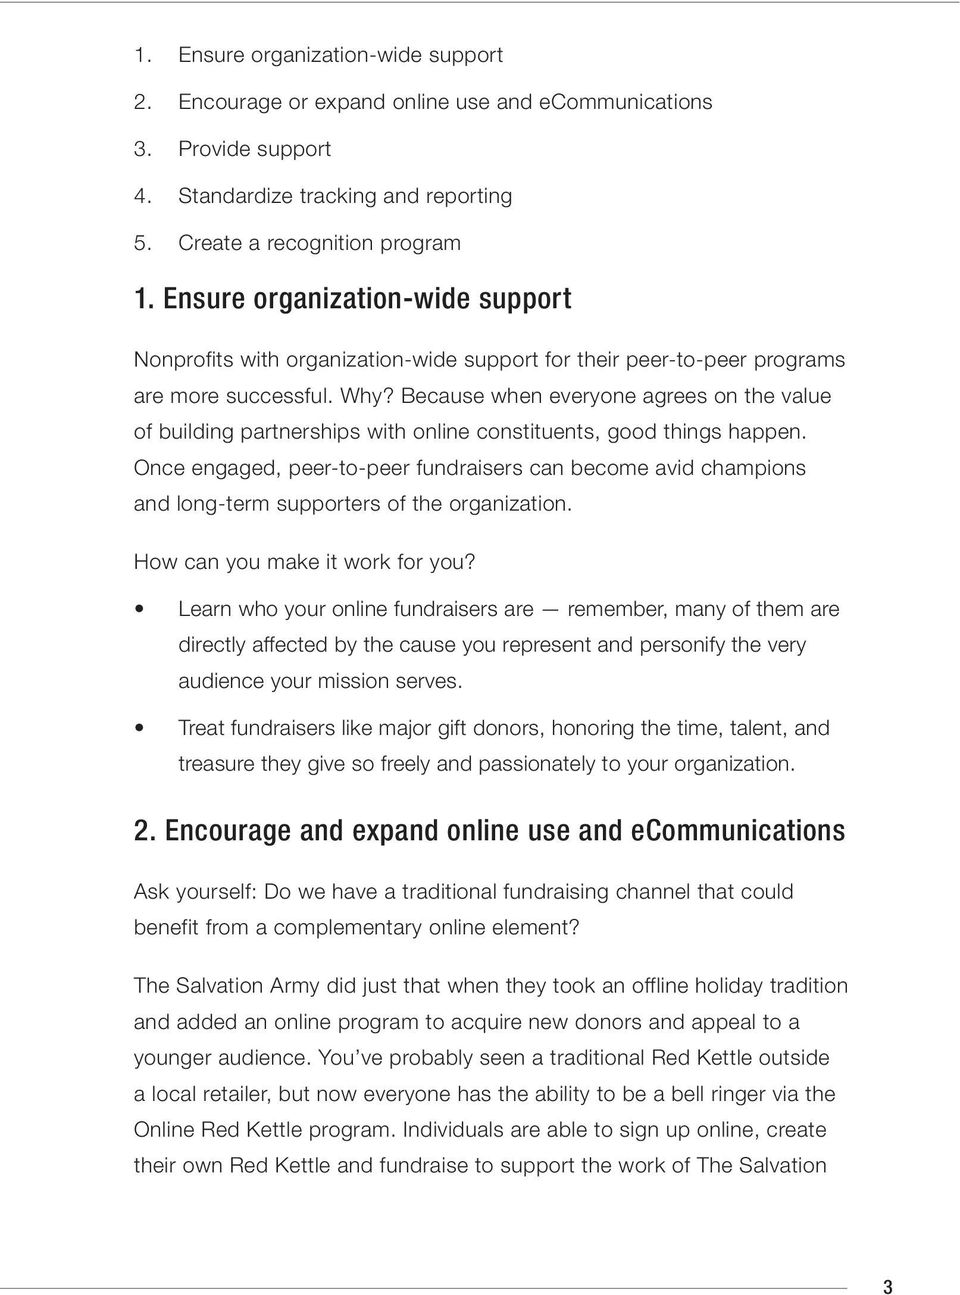 Because when everyone agrees on the value of building partnerships with online constituents, good things happen.